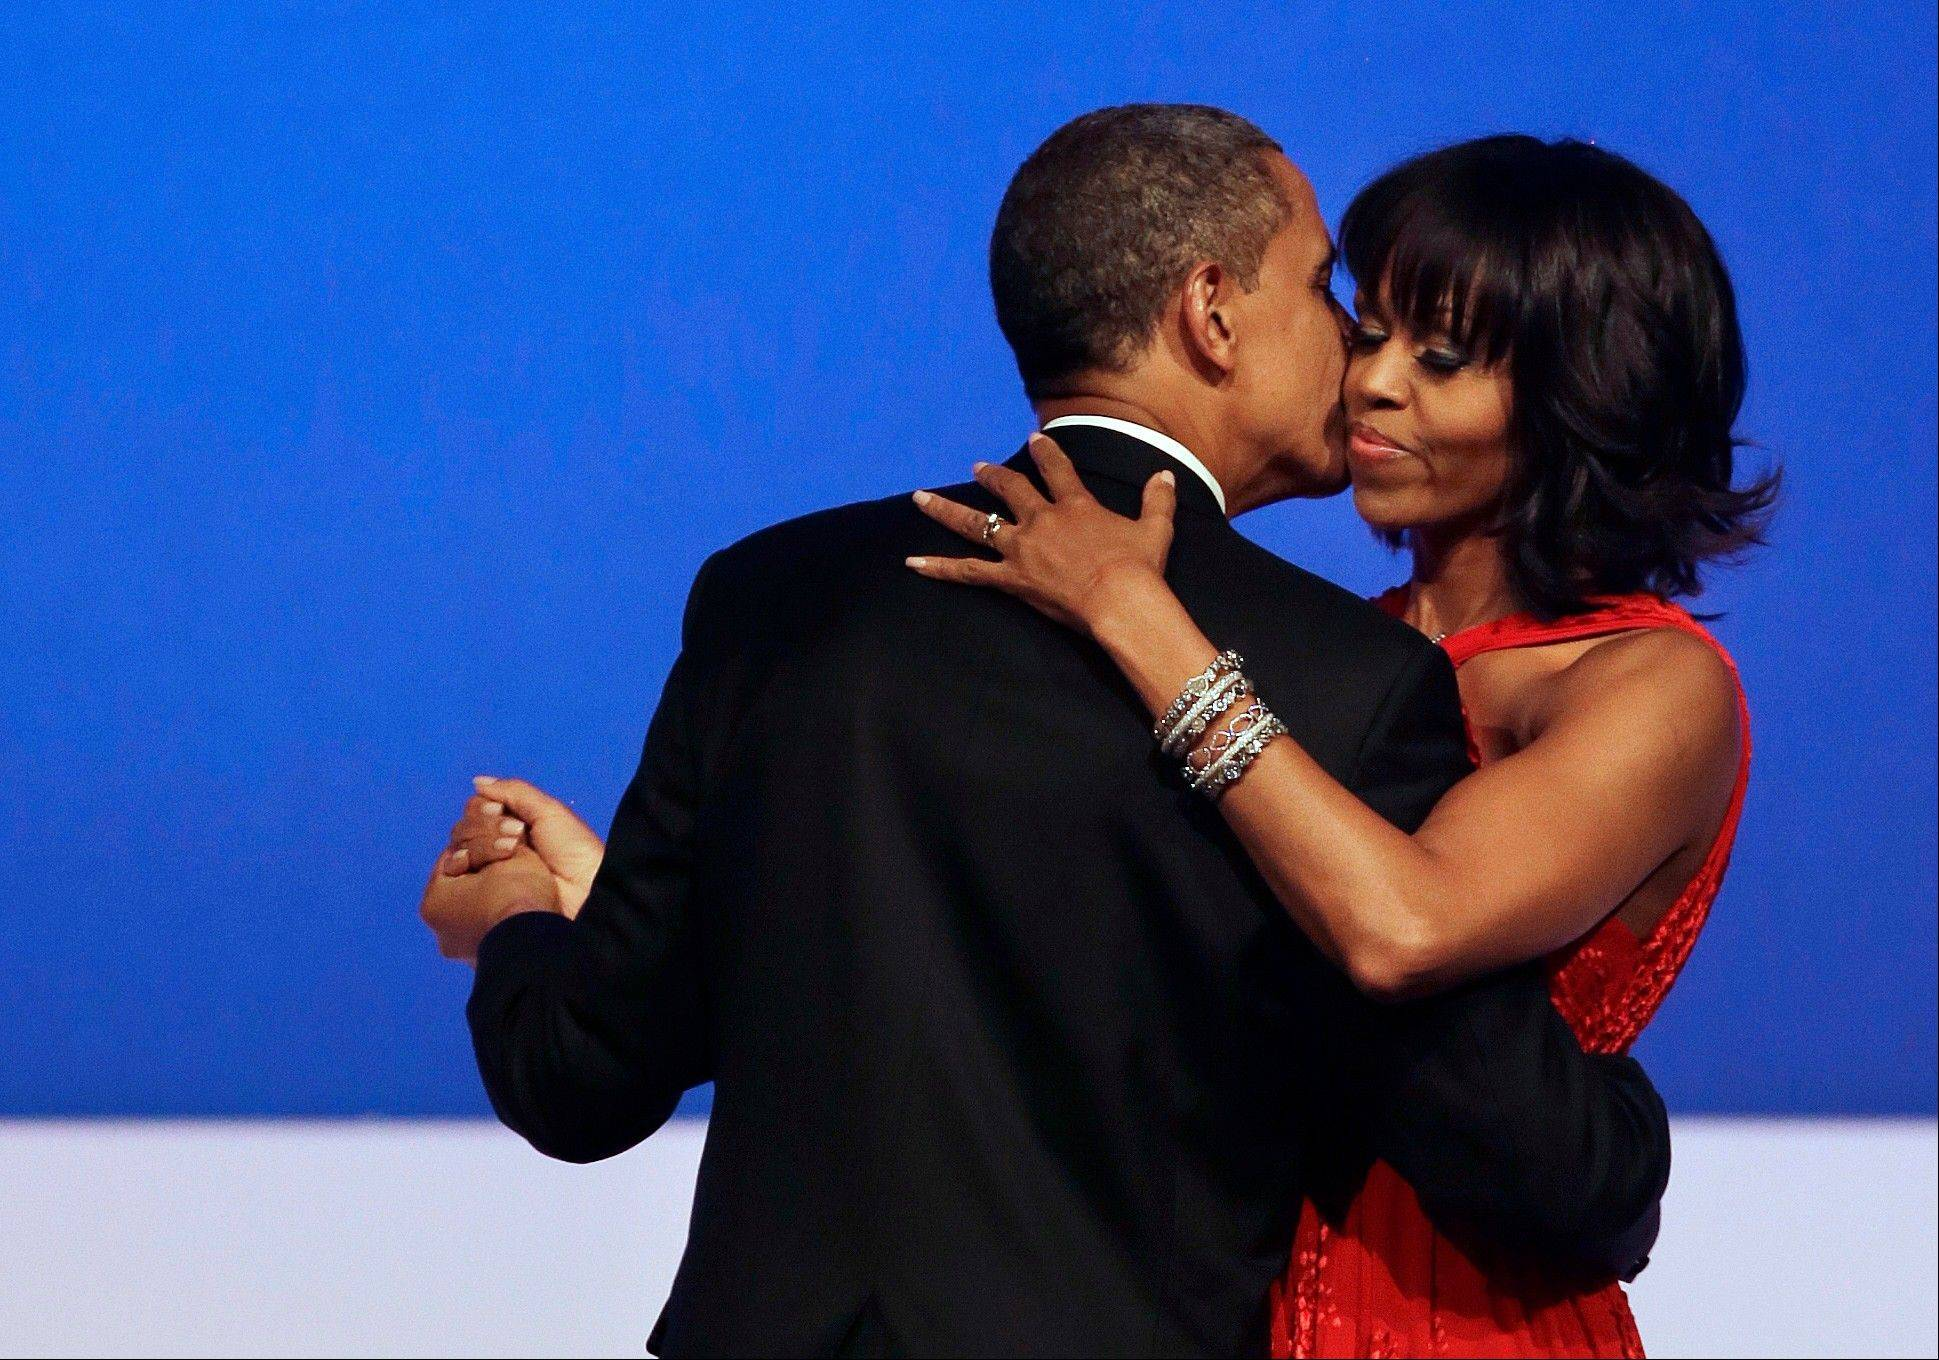 This Jan. 21, 2013 file photo shows President Barack Obama kissing first lady Michelle Obama during their dance at the Commander-in-Chief Inaugural Ball at the Washington Convention Center in Washington. Nobody would call bangs a new trend, but when the first lady's involved, things take on more significance. In fact, President Barack Obama did call his wife Michelle's new hairdo the most significant event of his second inauguration.